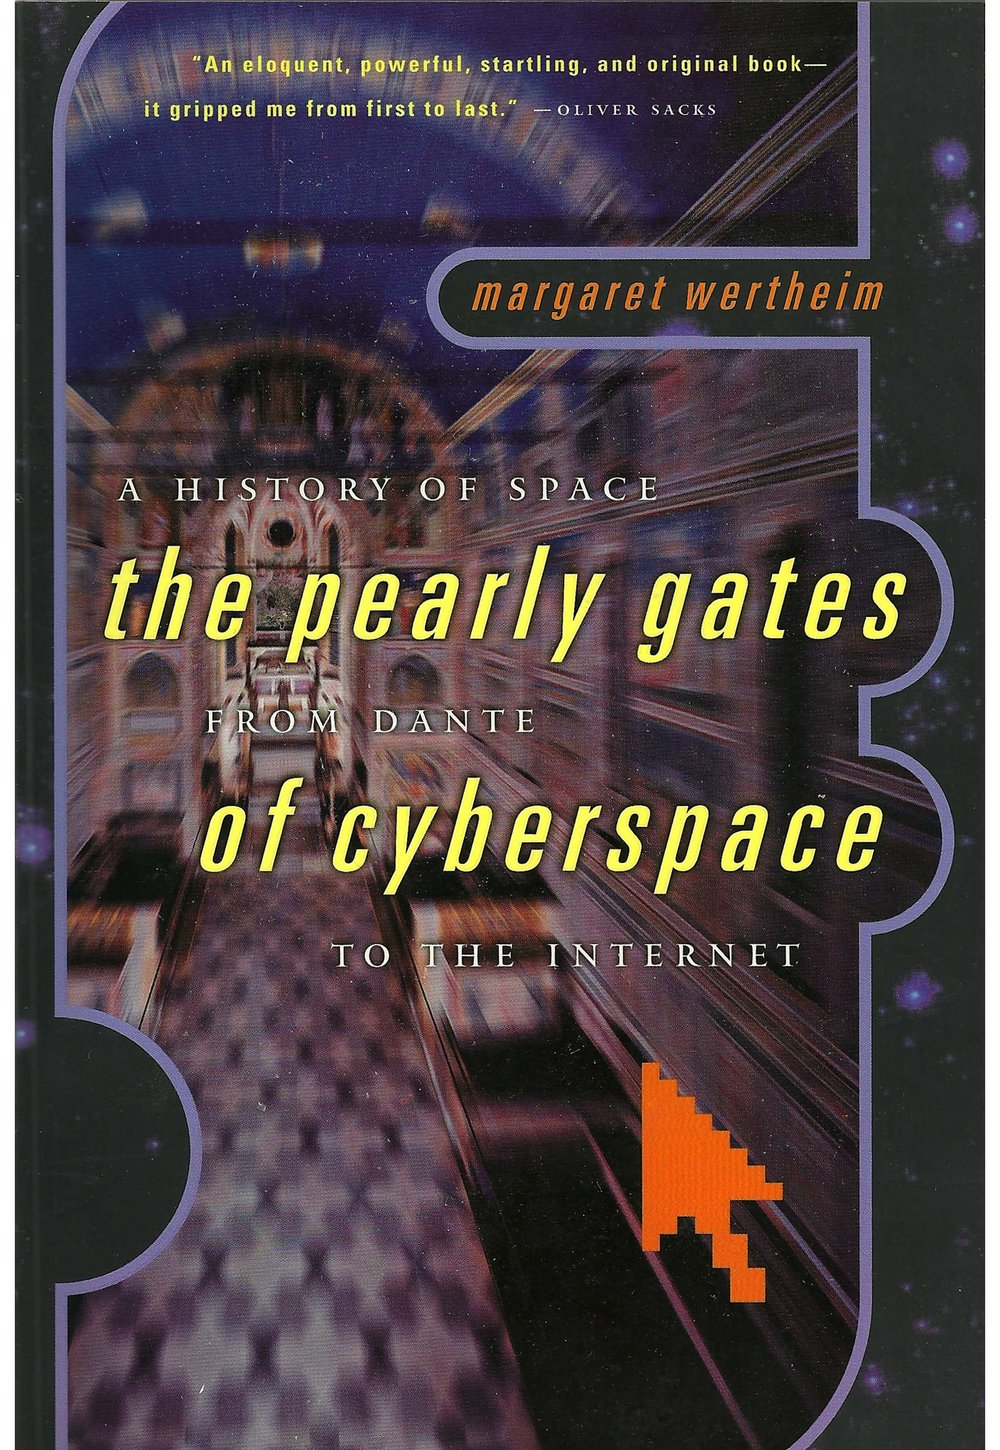 The Pearly Gates of Cyberspace